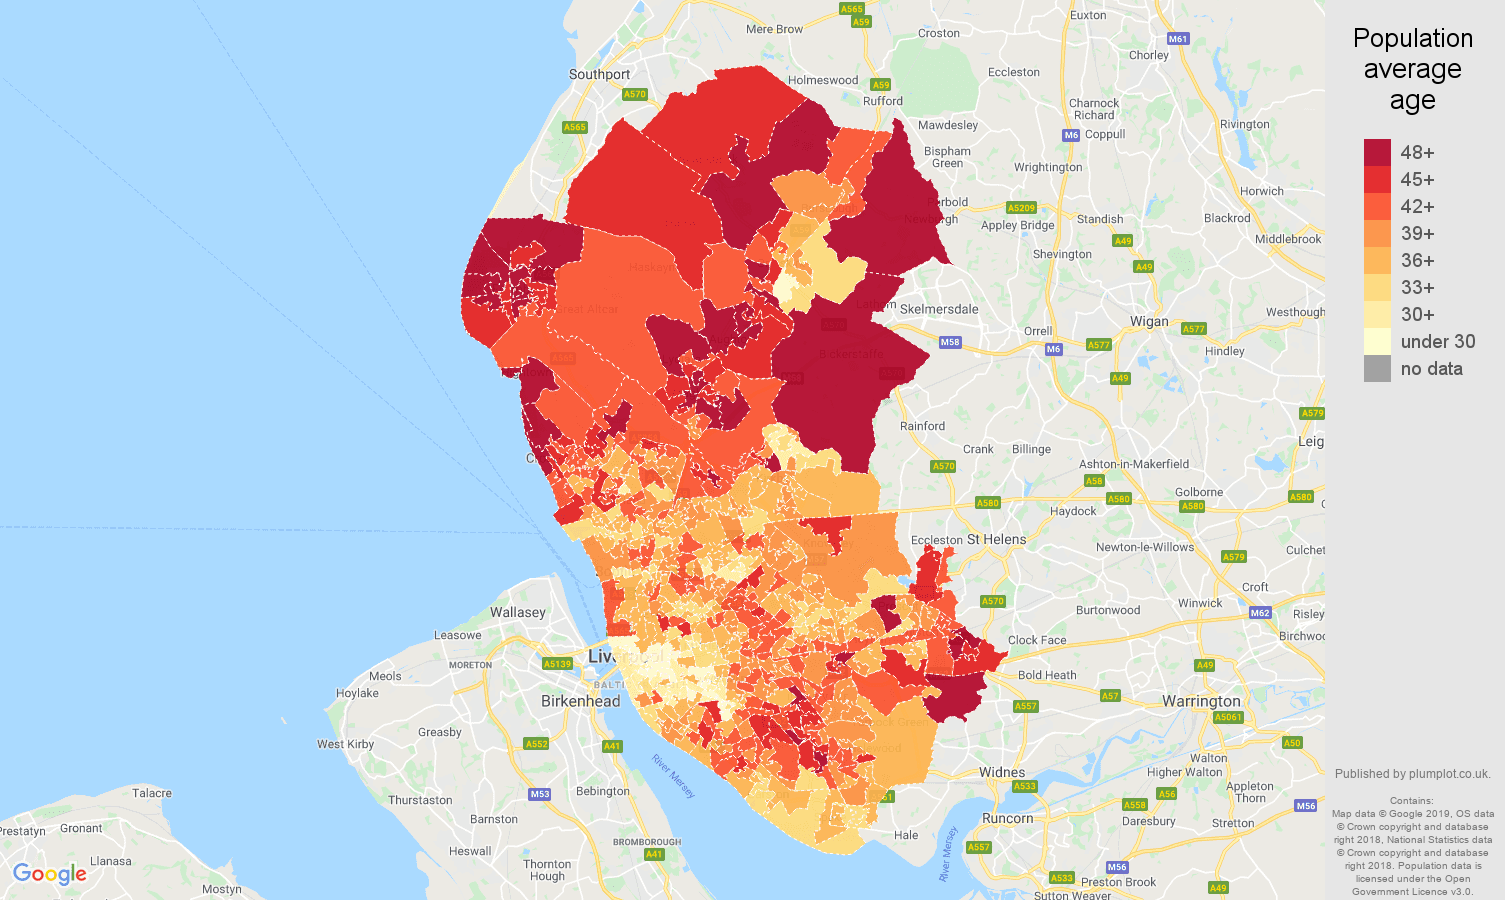 Liverpool population average age map